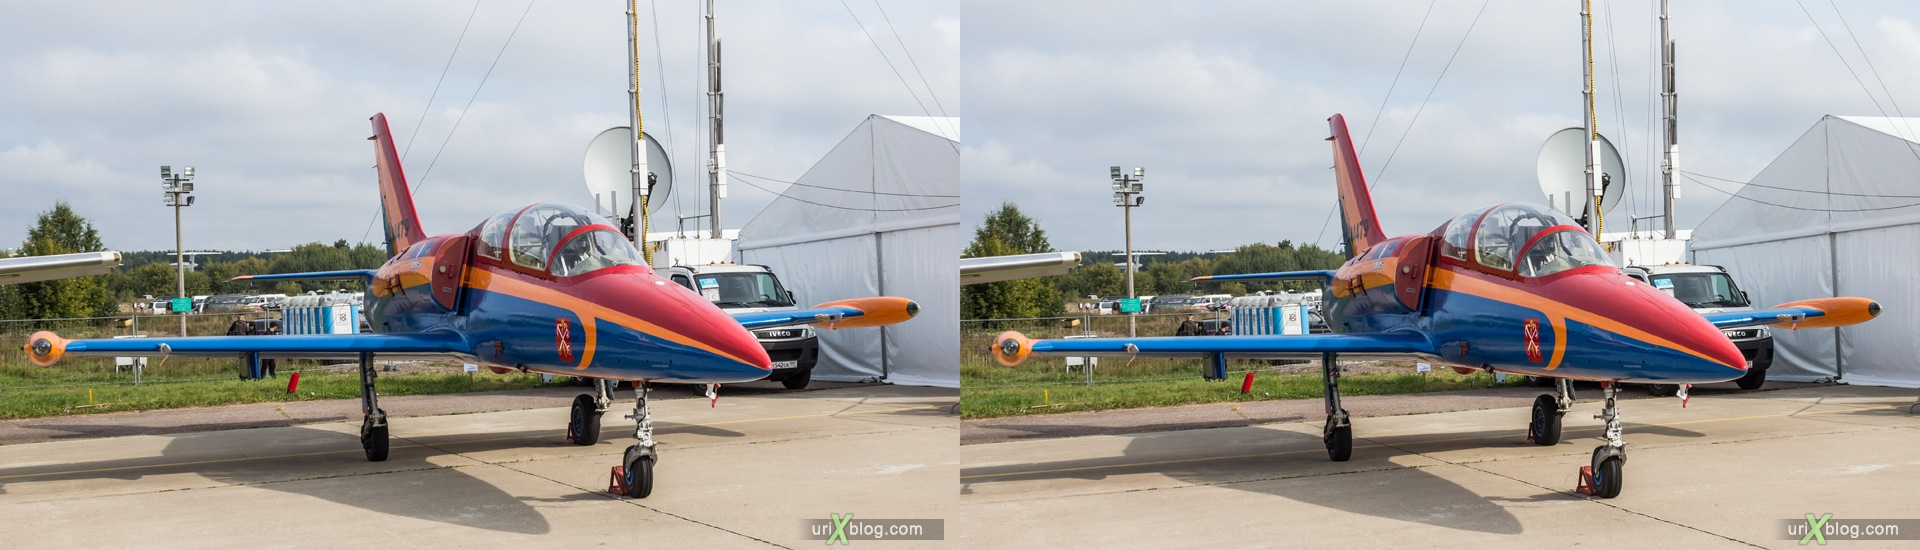 2013, Aero L-39, MAKS, International Aviation and Space Salon, Russia, Soviet, USSR, Ramenskoye airfield, airplane, 3D, stereo pair, cross-eyed, crossview, cross view stereo pair, stereoscopic